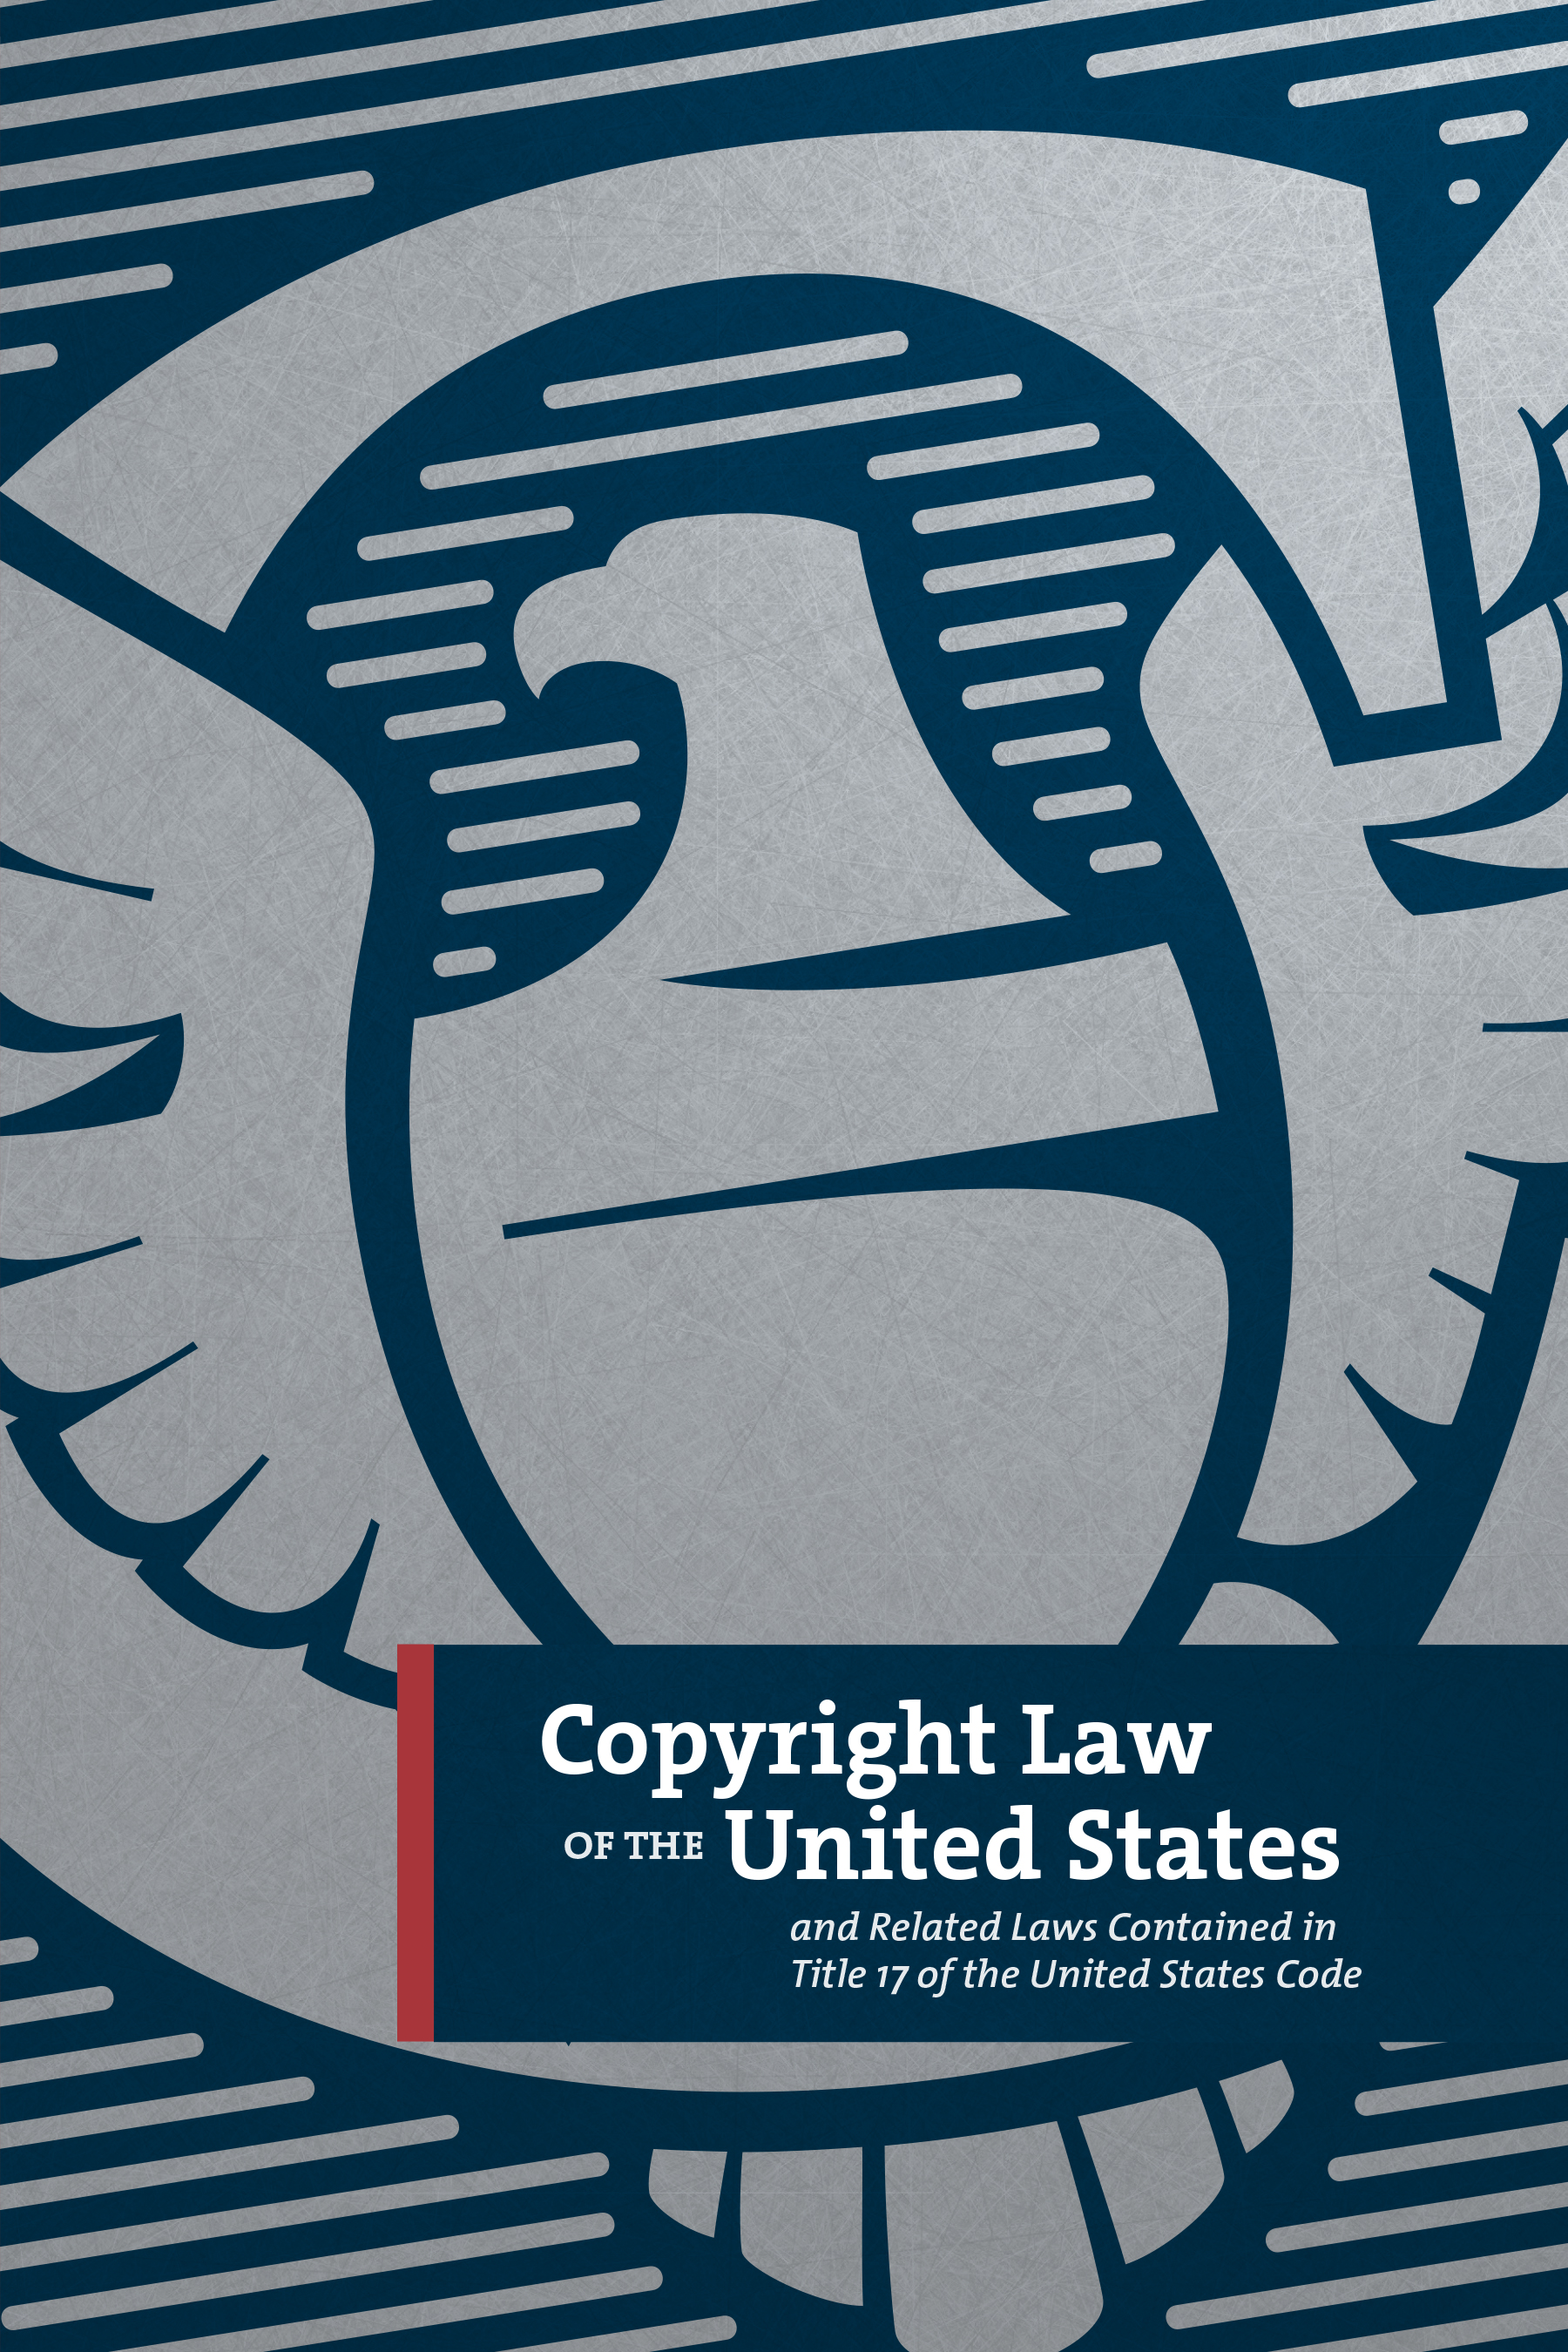 Brochure link to Copyright Law of the United States - Copyright Preset